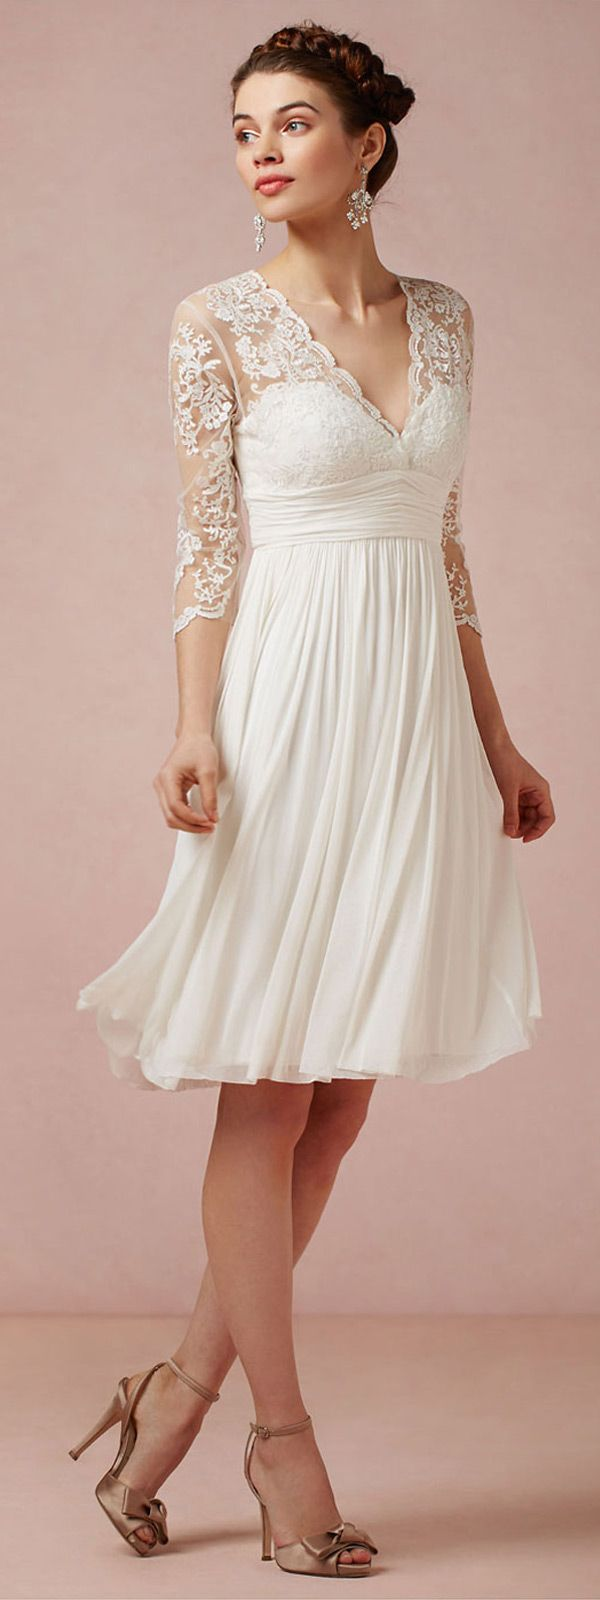 white lace empire waist dress